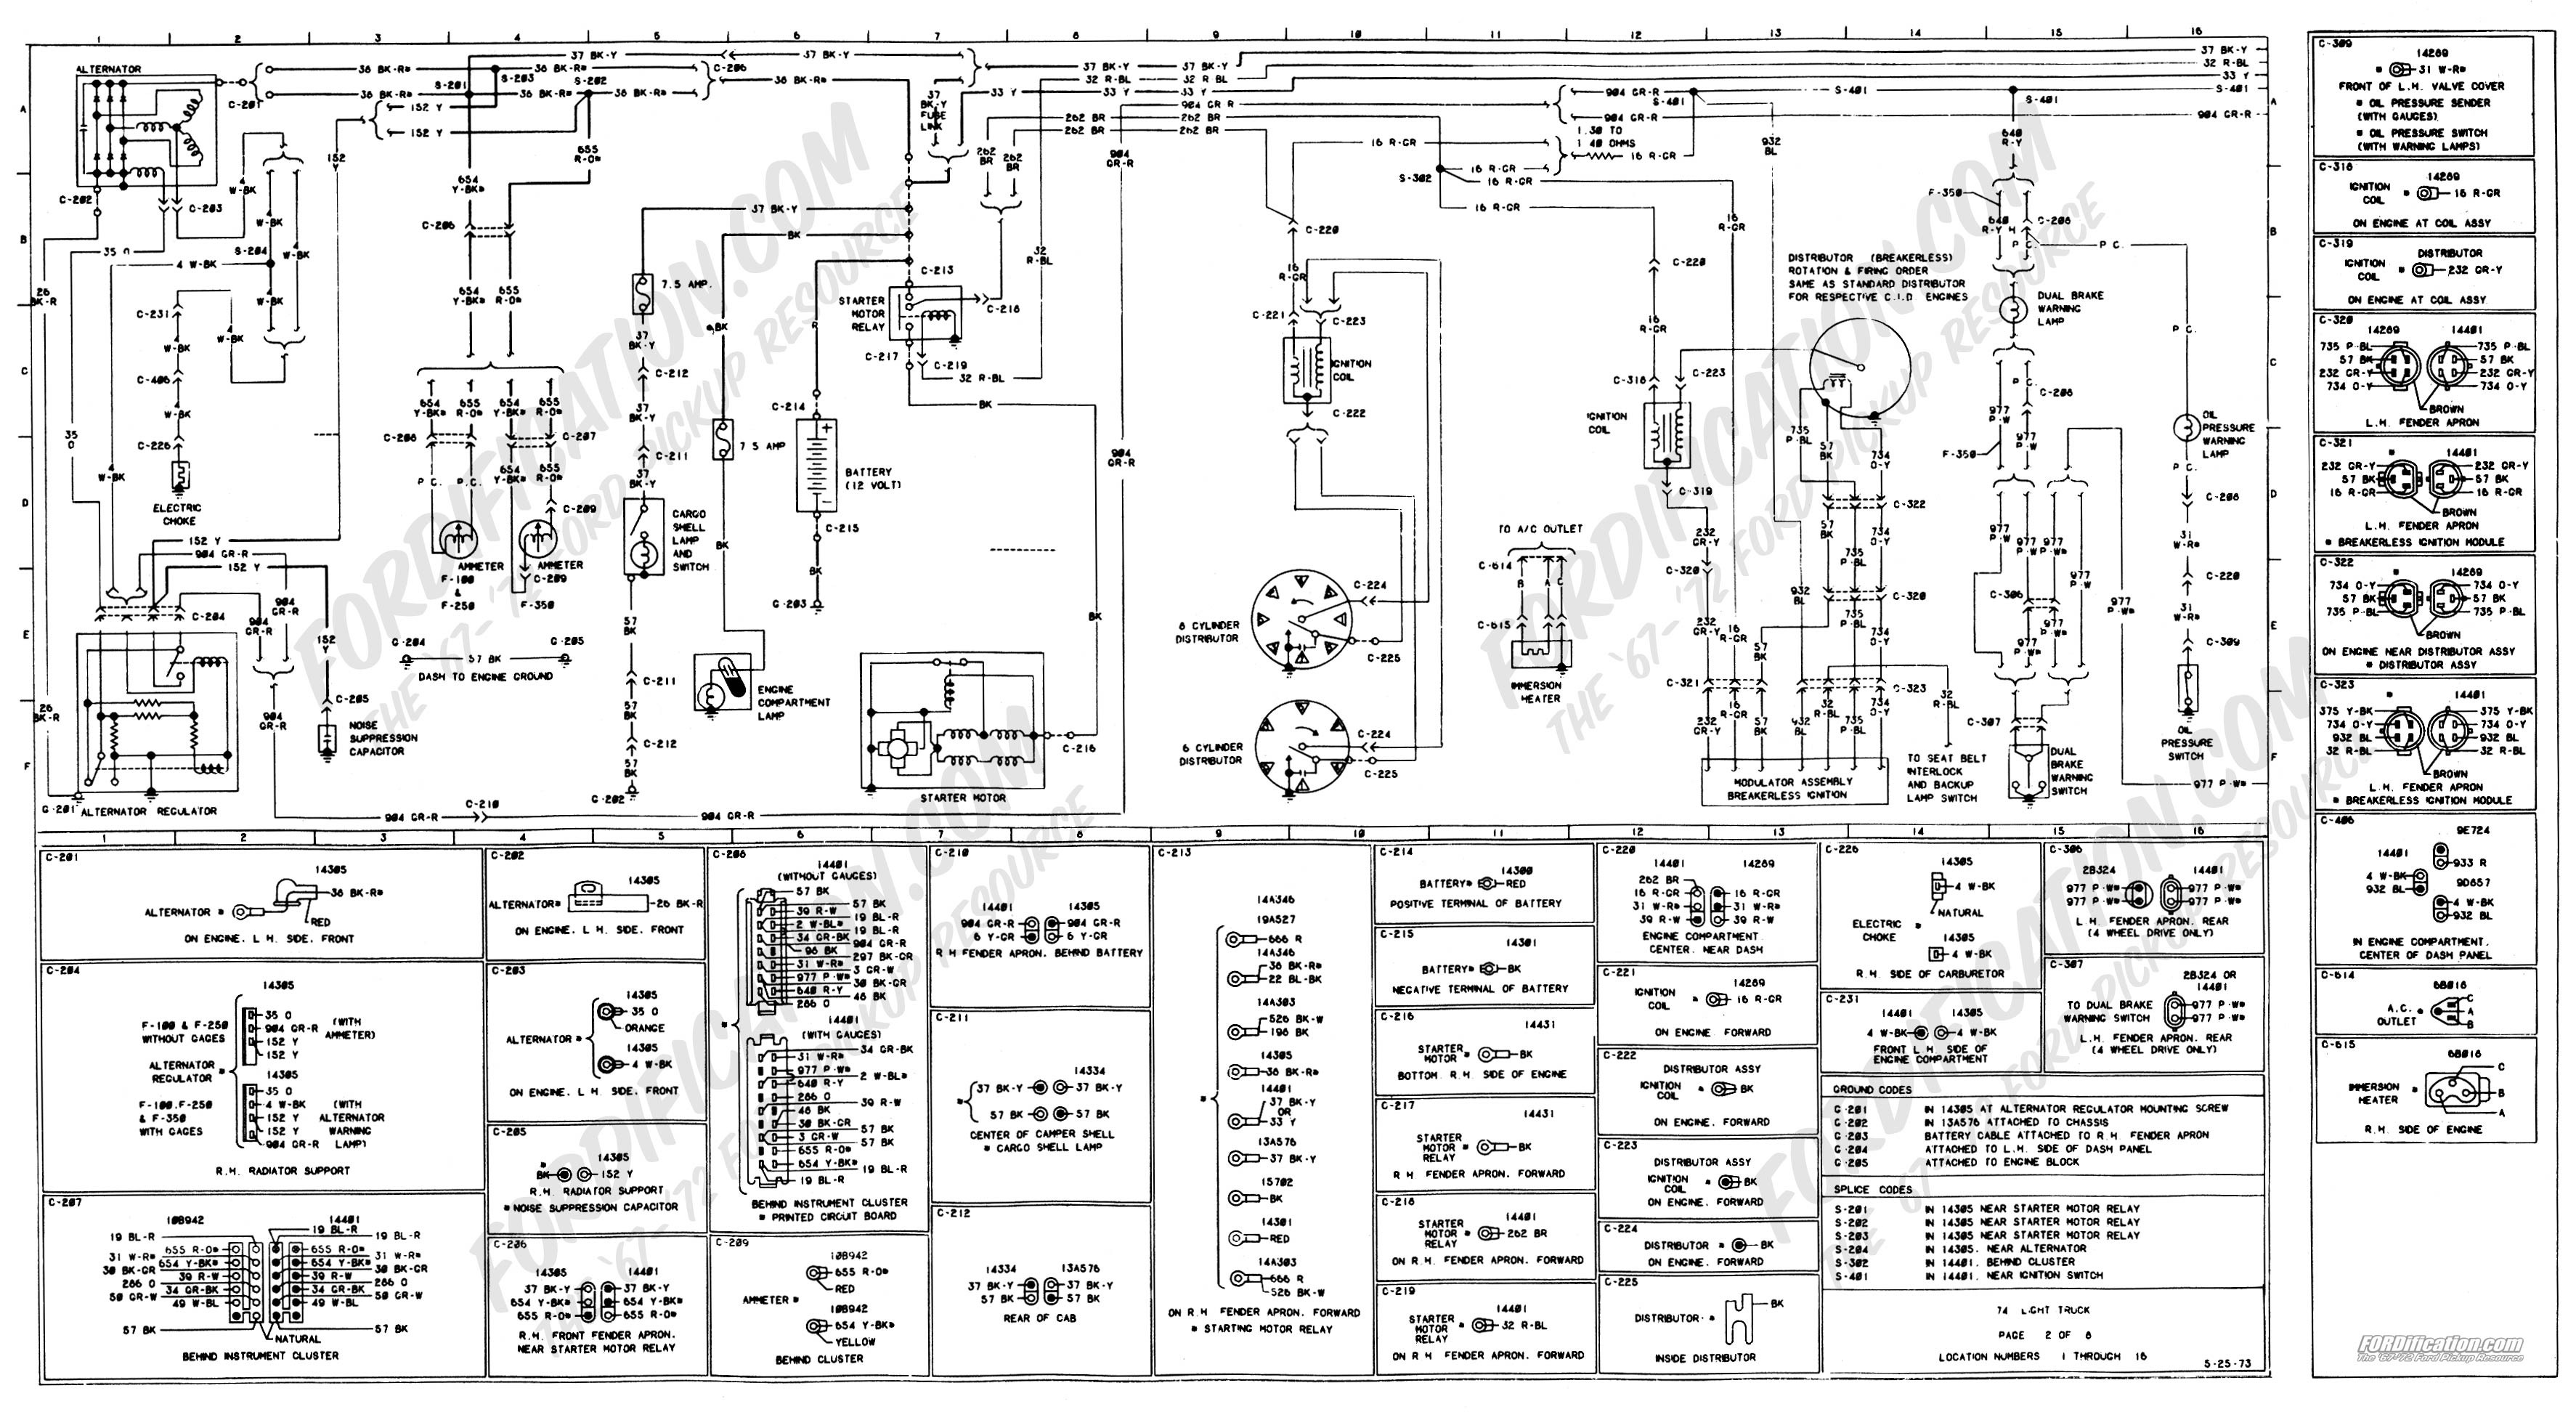 2004 Ford Crown Victoria Wiring Harness Library F350 Fuse Box Schematic Sterling Truck Diagrams For Alternator Best Site 54 Diagram